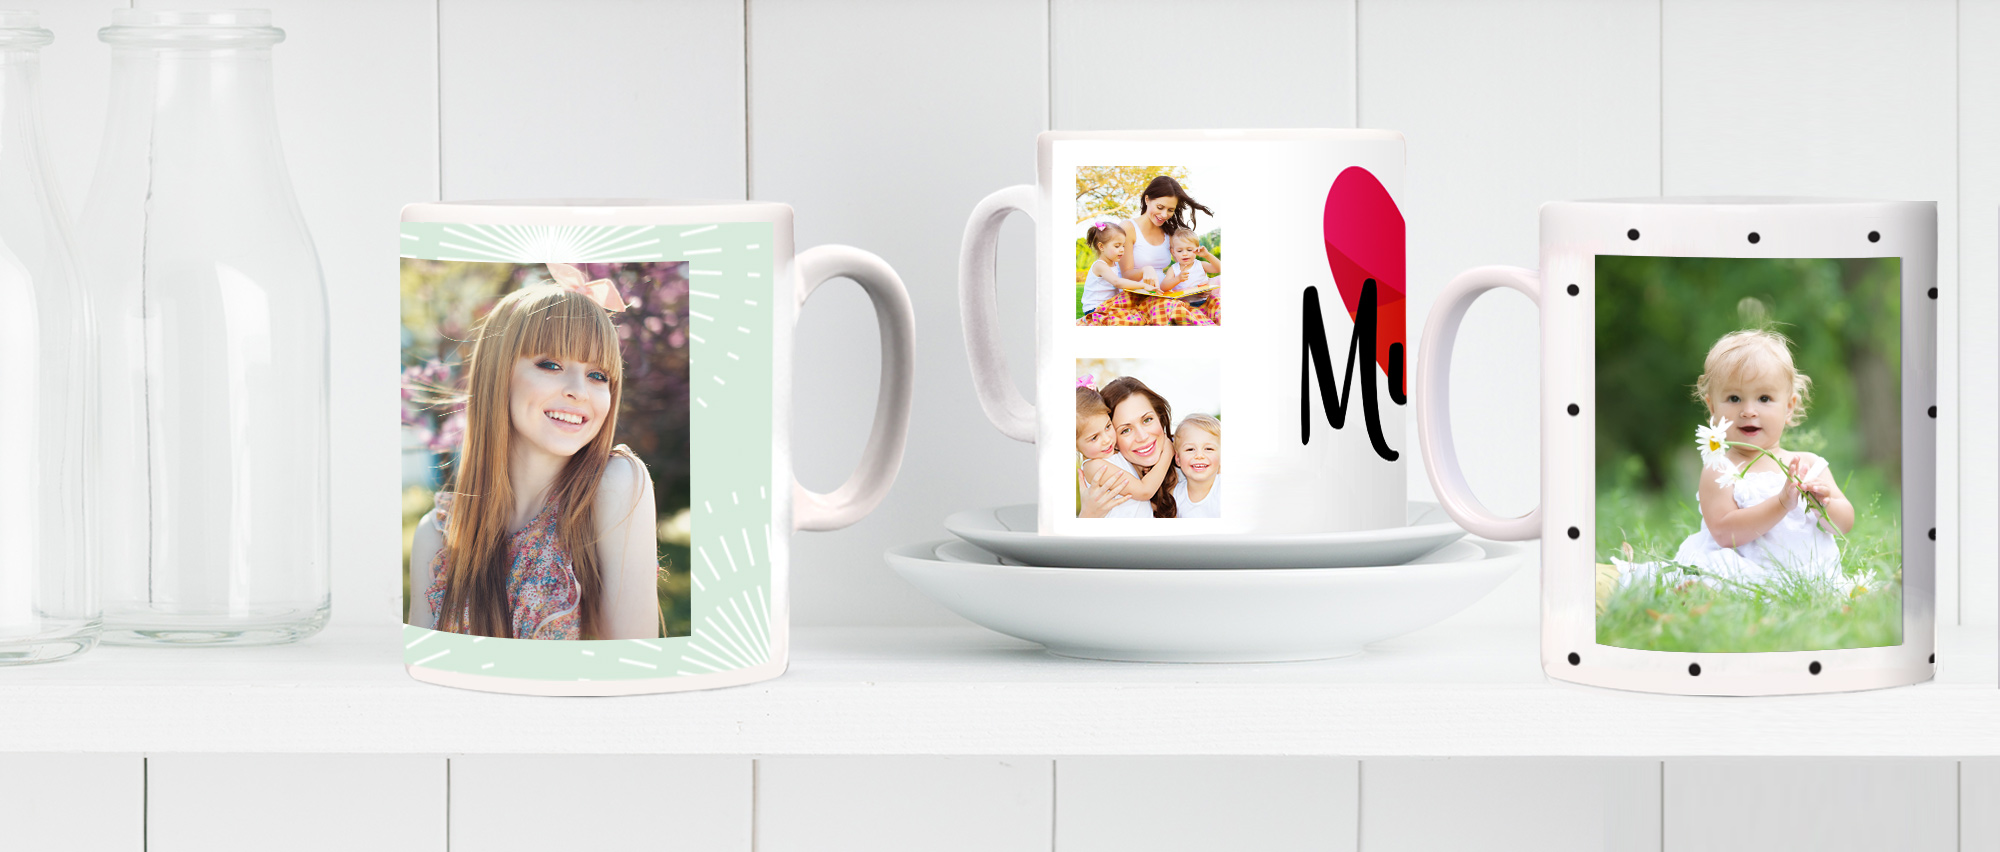 Make this customised crockery unique with your favourite photos and personal messages. Simply choose your preferred template and follow our step by step instructions. You can use images from your social media accounts, computer or phone, so wherever you store your most cherished snaps, you can display them in style.  Creating perfectly crafted photo mugs with Truprint takes a matter of minutes, and if your design isn't perfect, our intelligent software will stop you from buying it. As soon as you've placed your order, we'll bring it to life right here in the UK, ensuring a flawless finish. With designs available from as little as £7.99, our mugs are superb value for money too. So, you don't have to bust your budget to get your hands on one of these cute, quirky accessories.